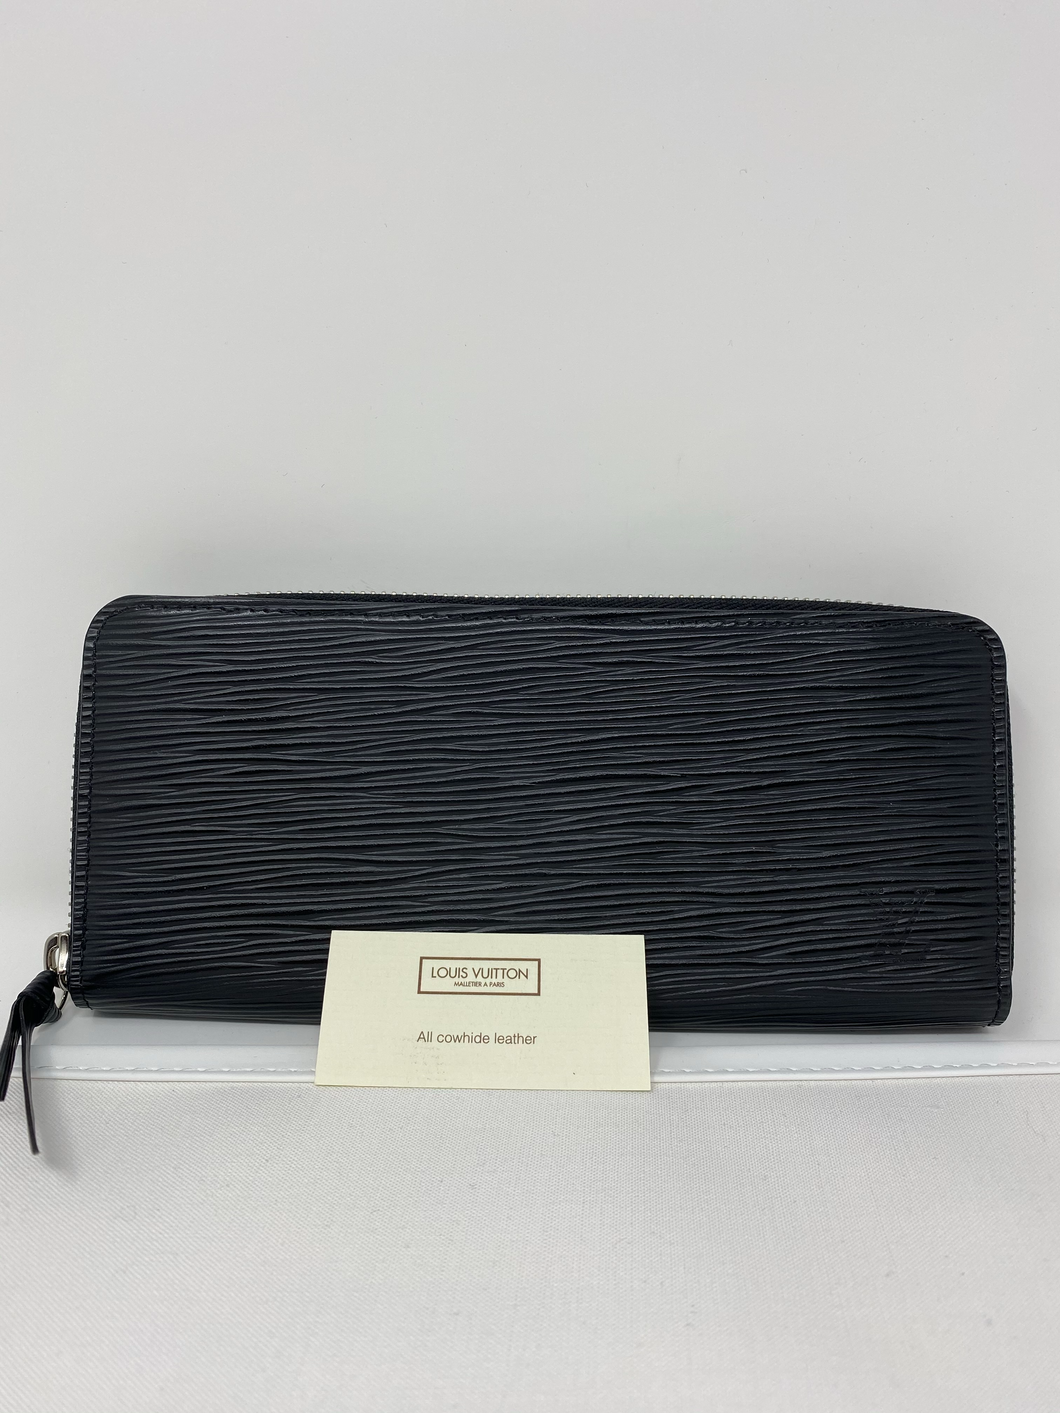 Louis Vuitton Clemence Leather Black Wallet - Brand new